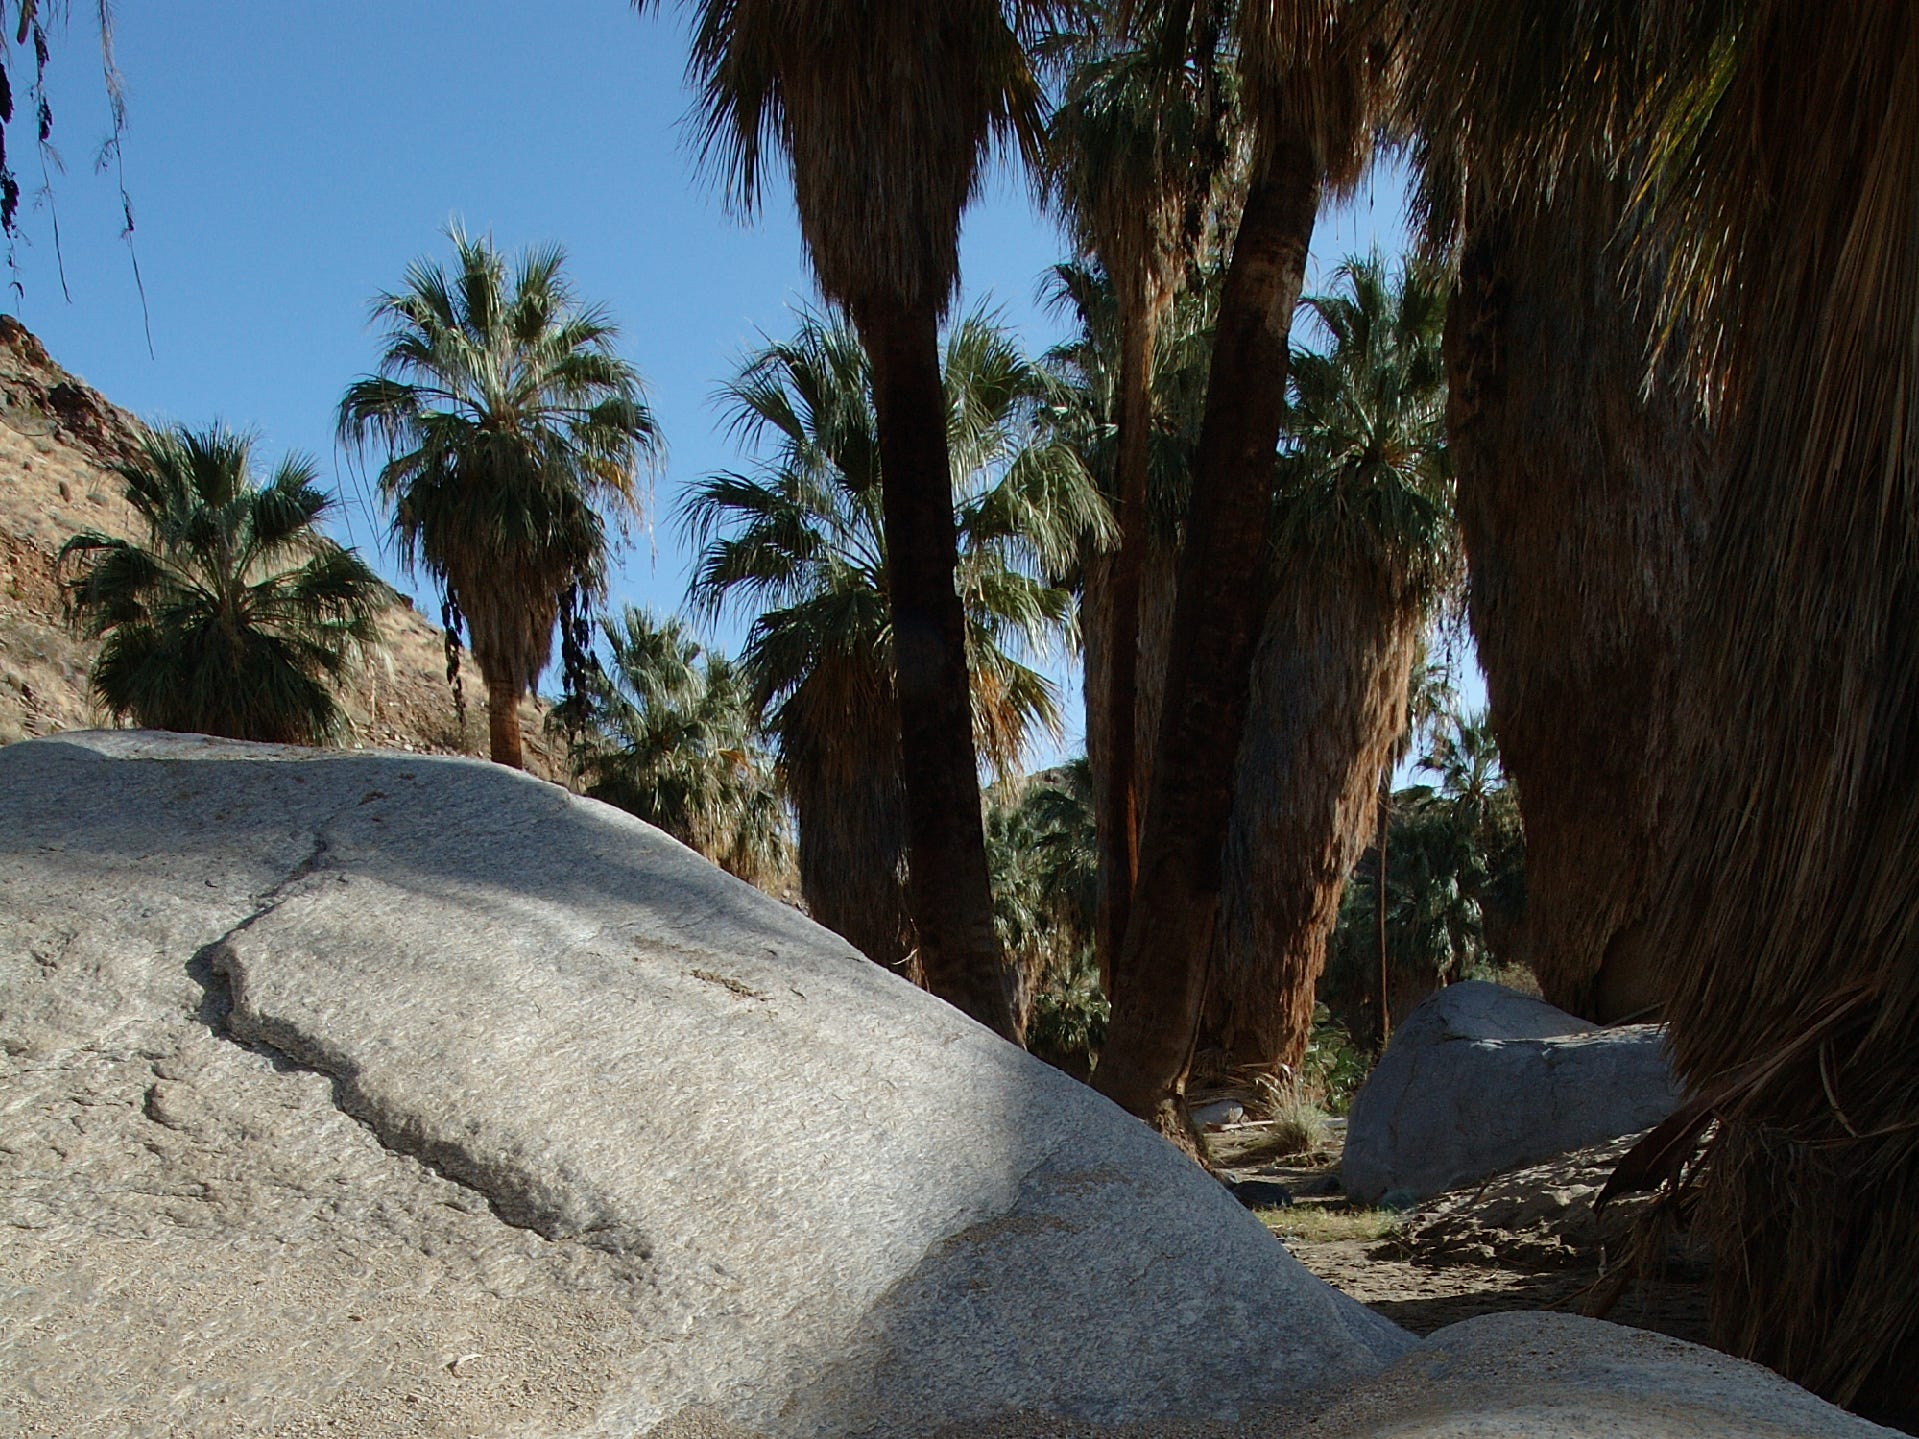 Bedrock mortar in Palm Canyon